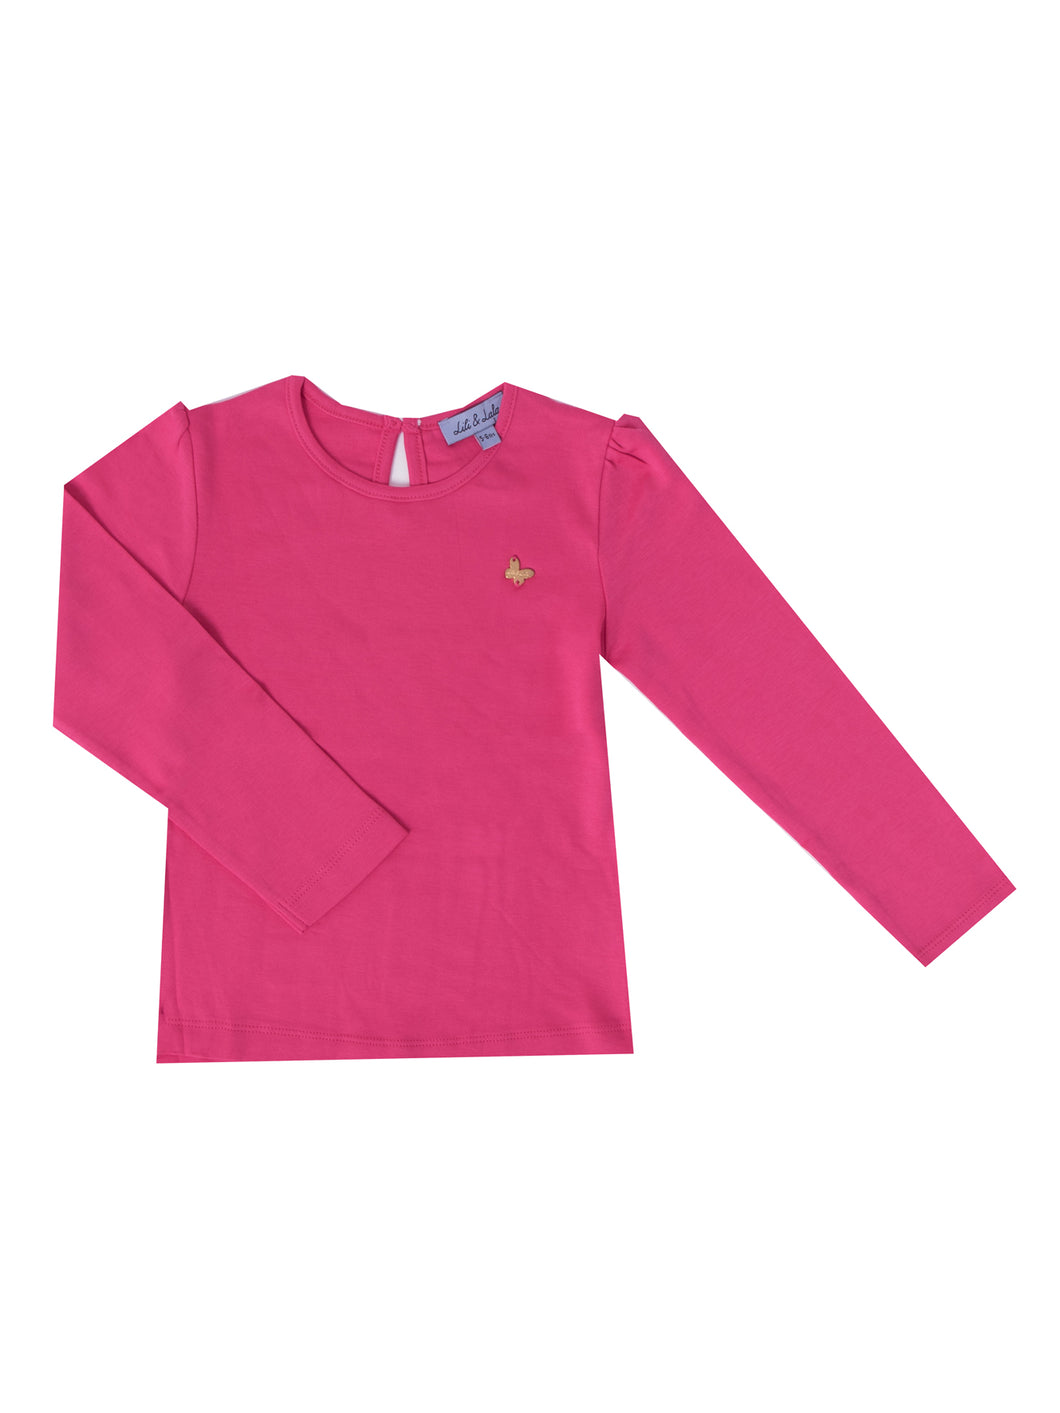 Melia long sleeved t-shirt, Evening sky